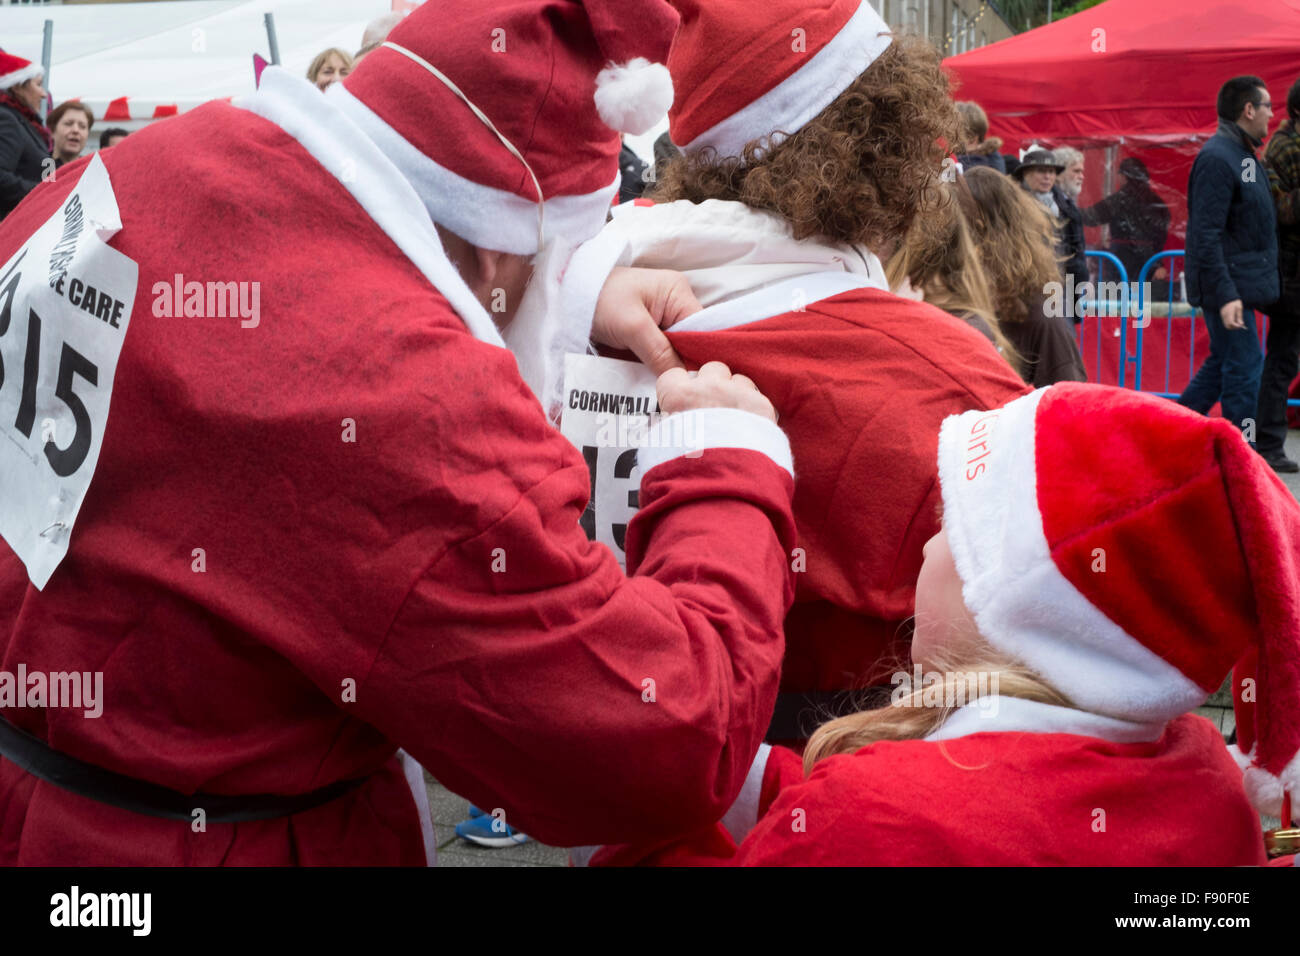 Fun runner pins the race number on his partners back as daughter looks on. Stock Photo